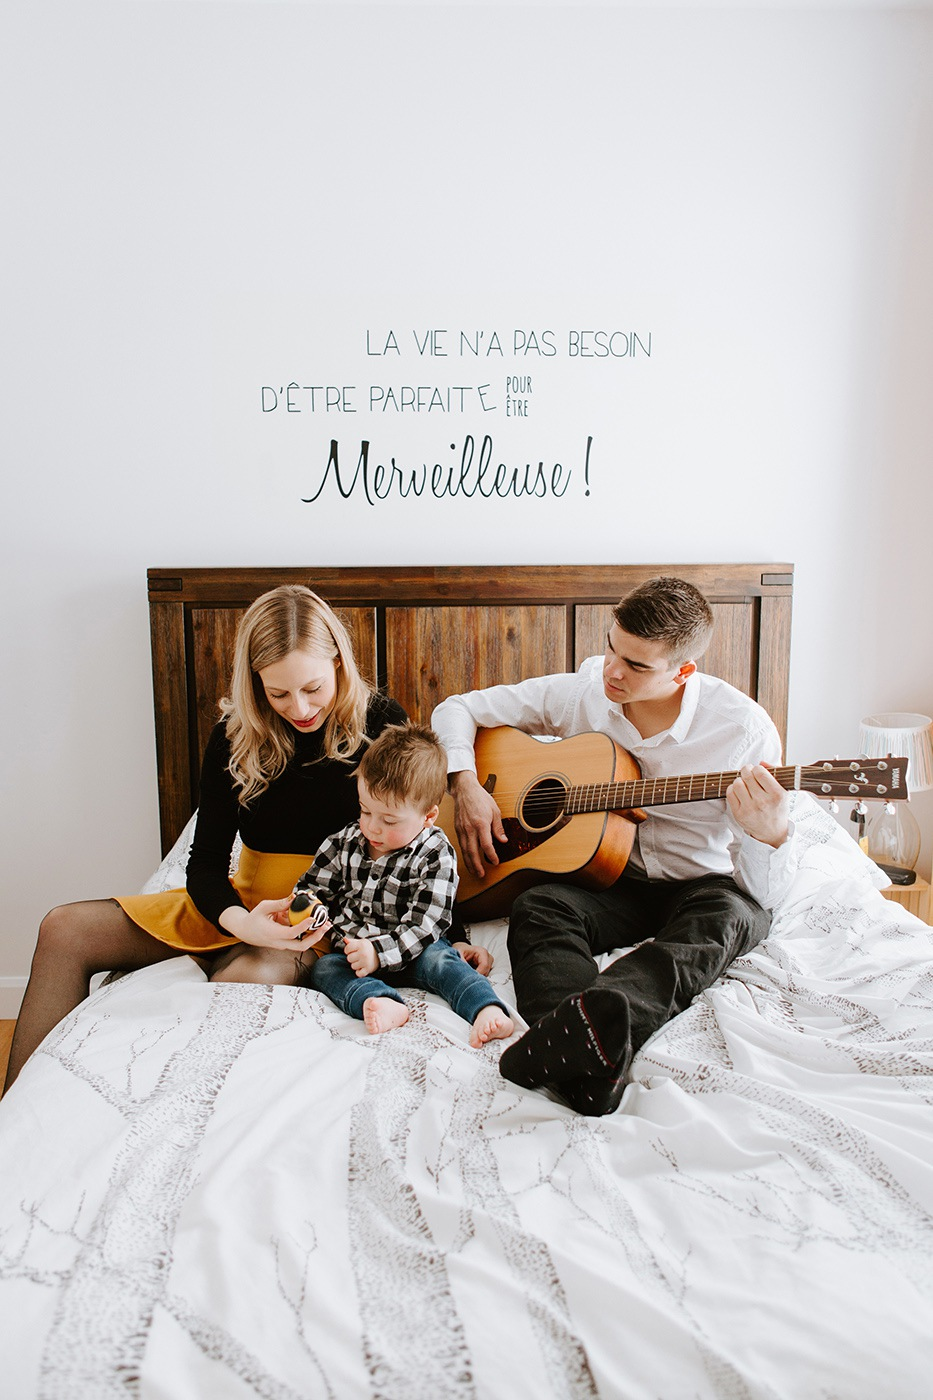 Family photos with guitar. Dad and son playing guitar. In-home maternity session. Family pregnancy photos. Maternity photos with toddler. Photos de maternité au Saguenay. In-home maternity session with toddler in Saguenay